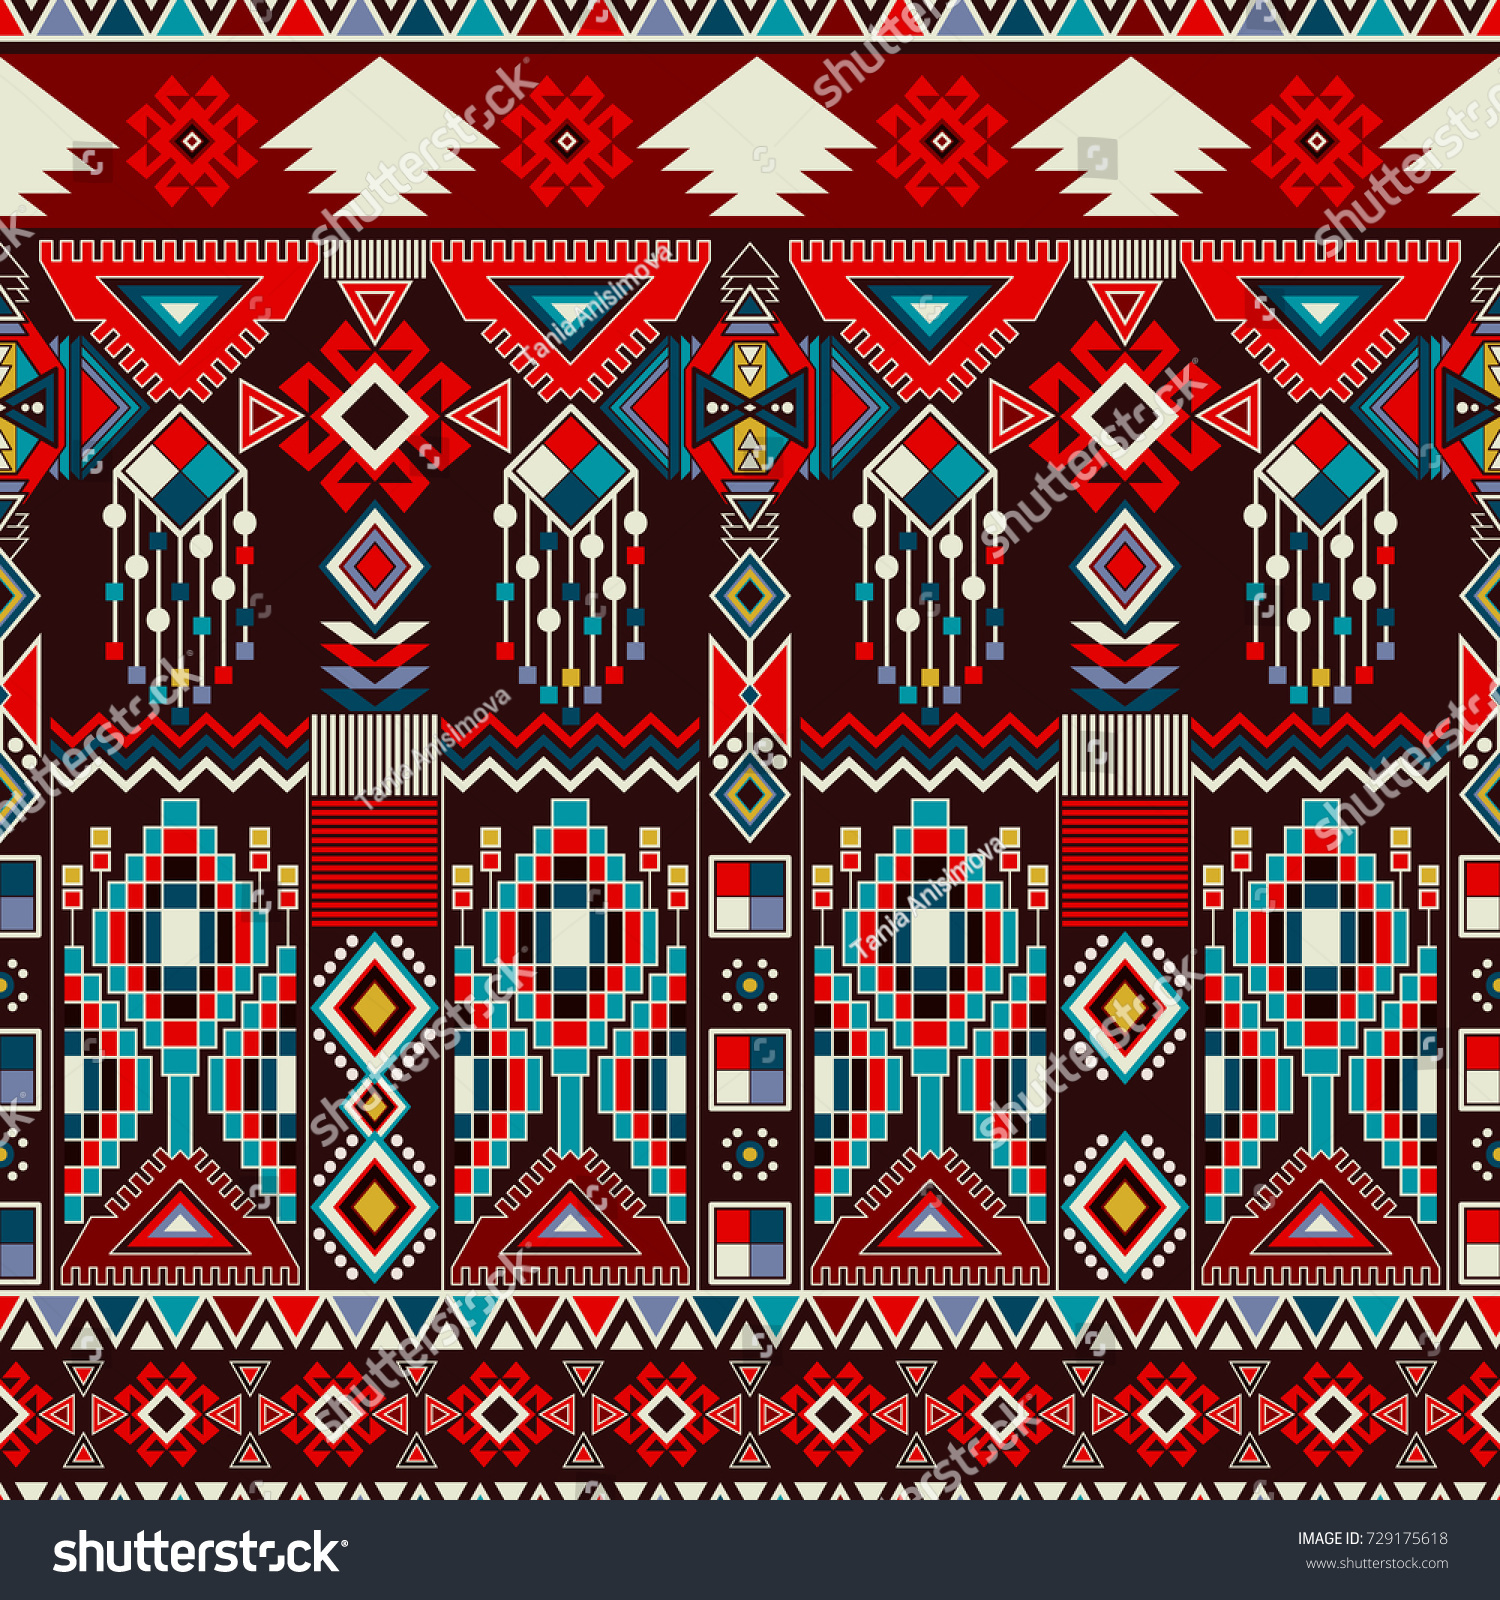 Native American Design Wallpaper : Geometric ornament ceramics wallpaper textile web stock